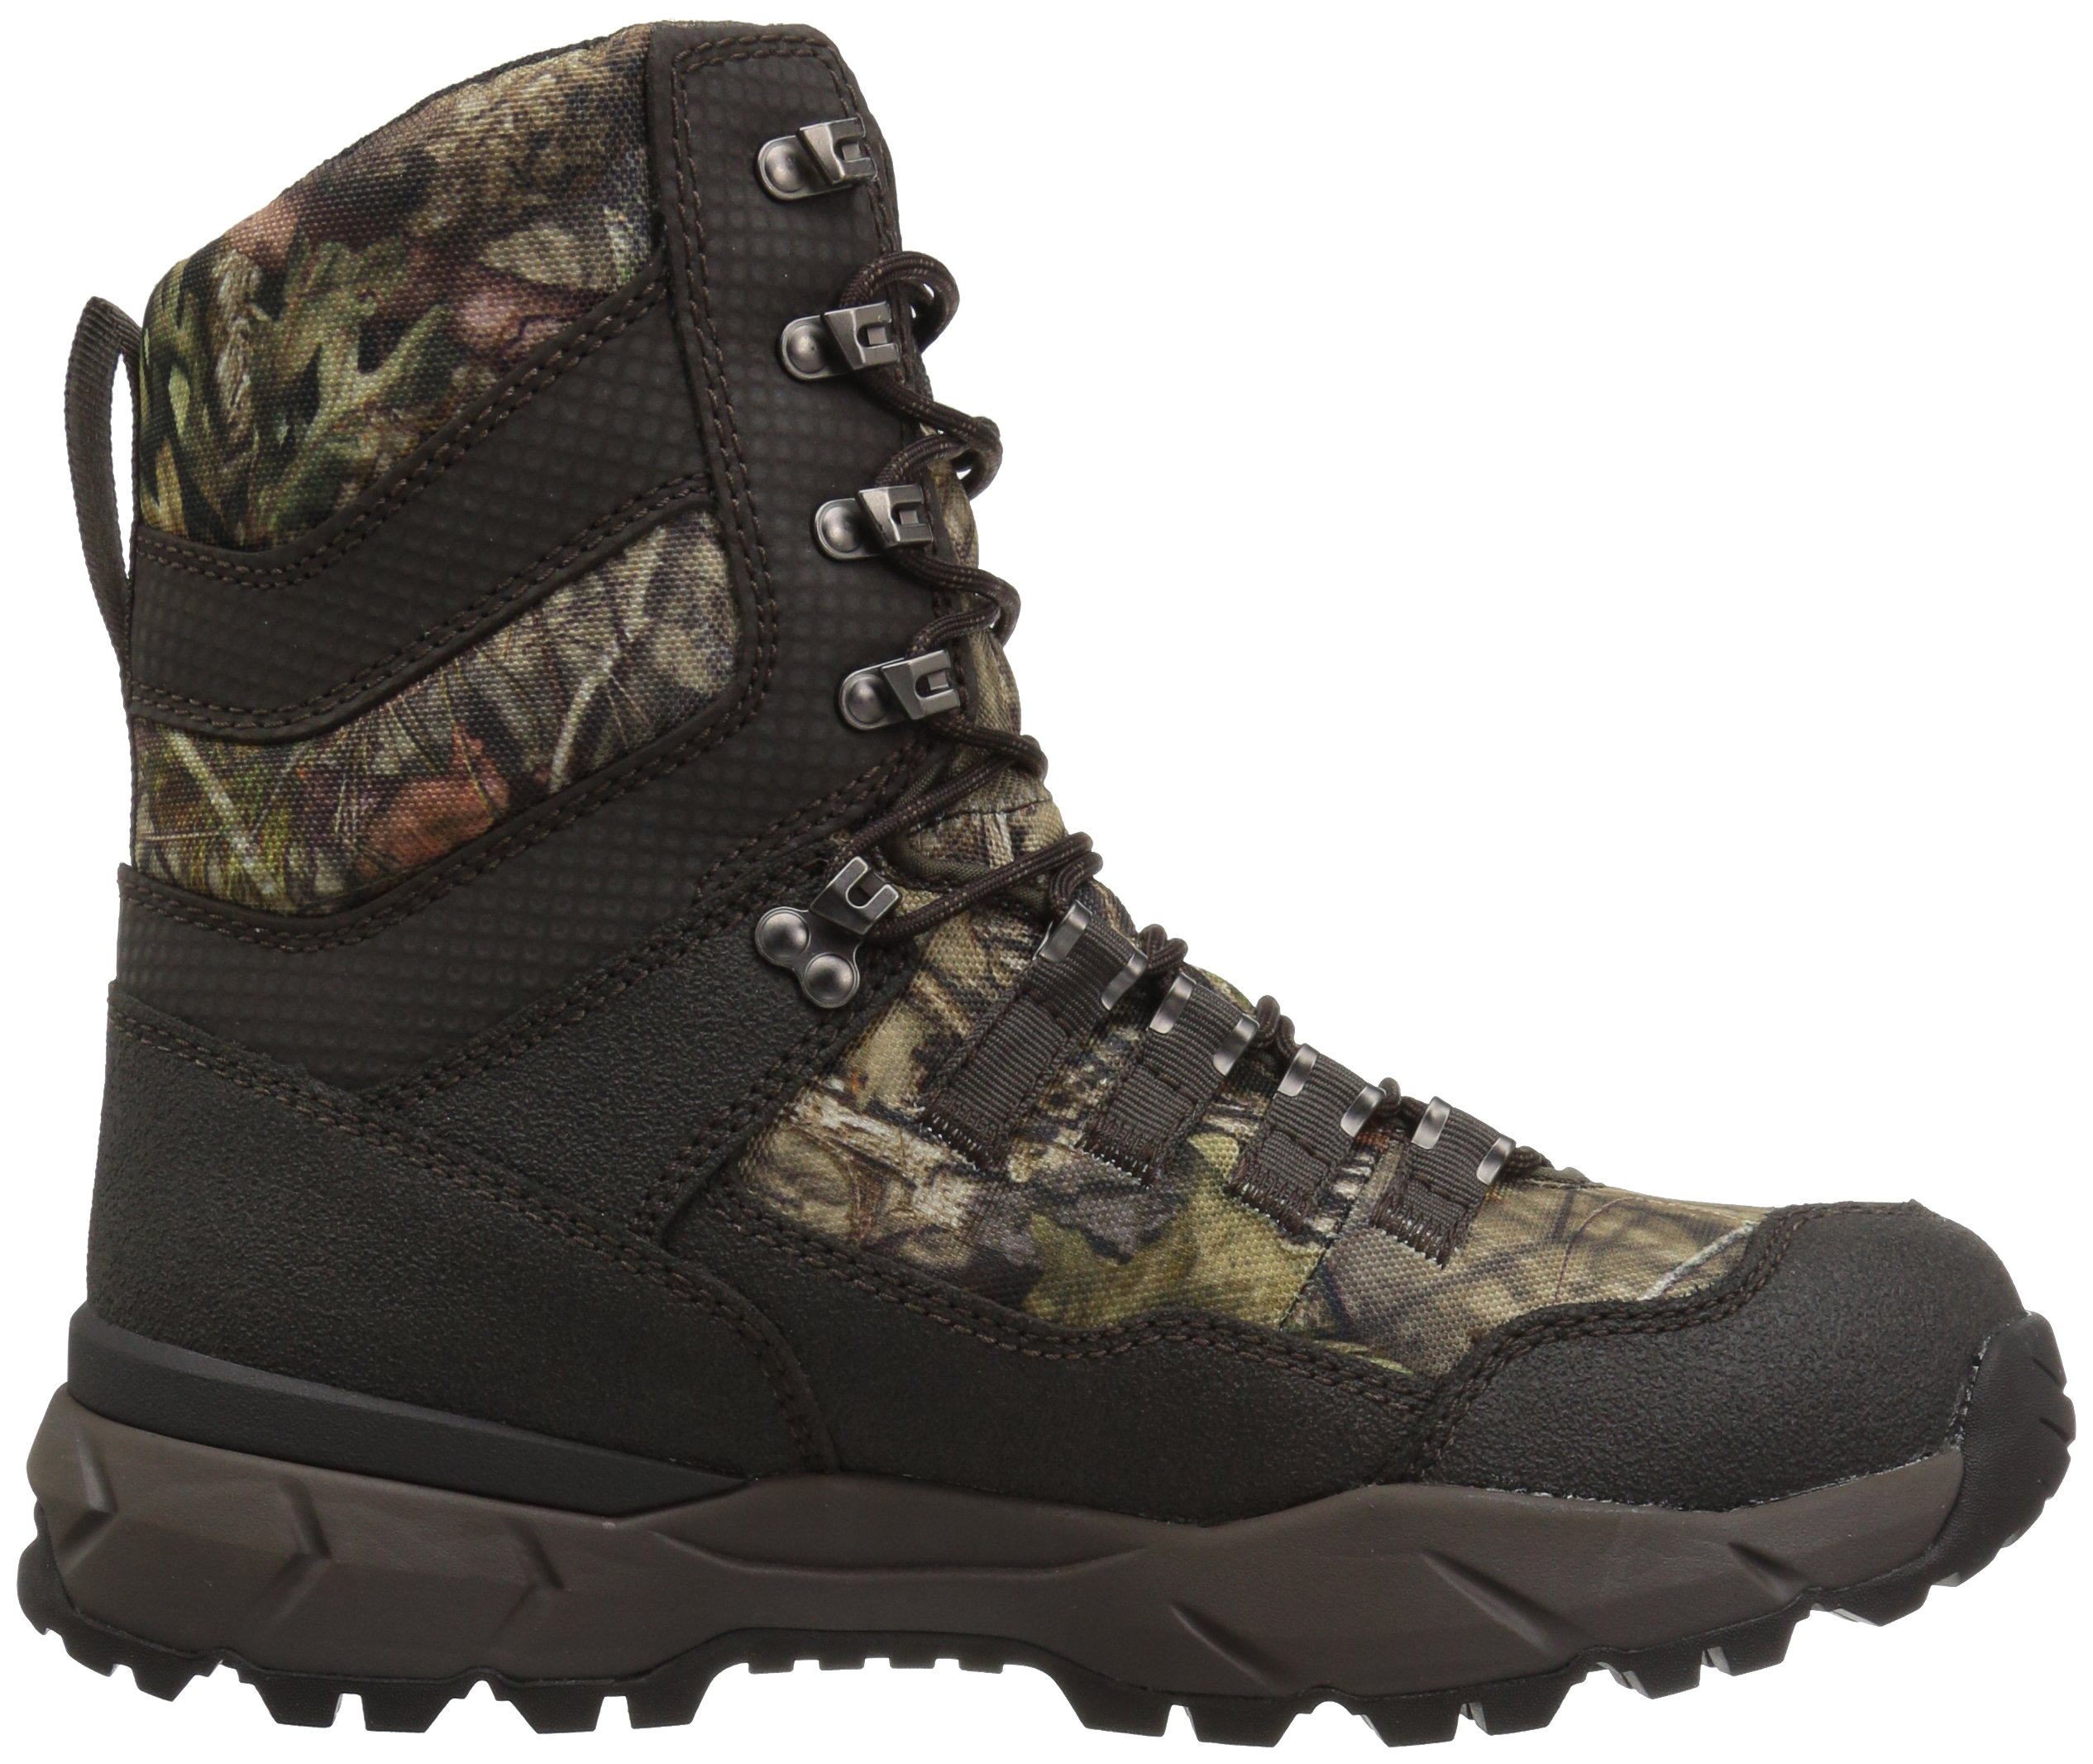 Danner Men's Vital Insulated 400G Hunting Shoes, Mossy Oak Break Up Country, 8.5 D US by Danner (Image #7)